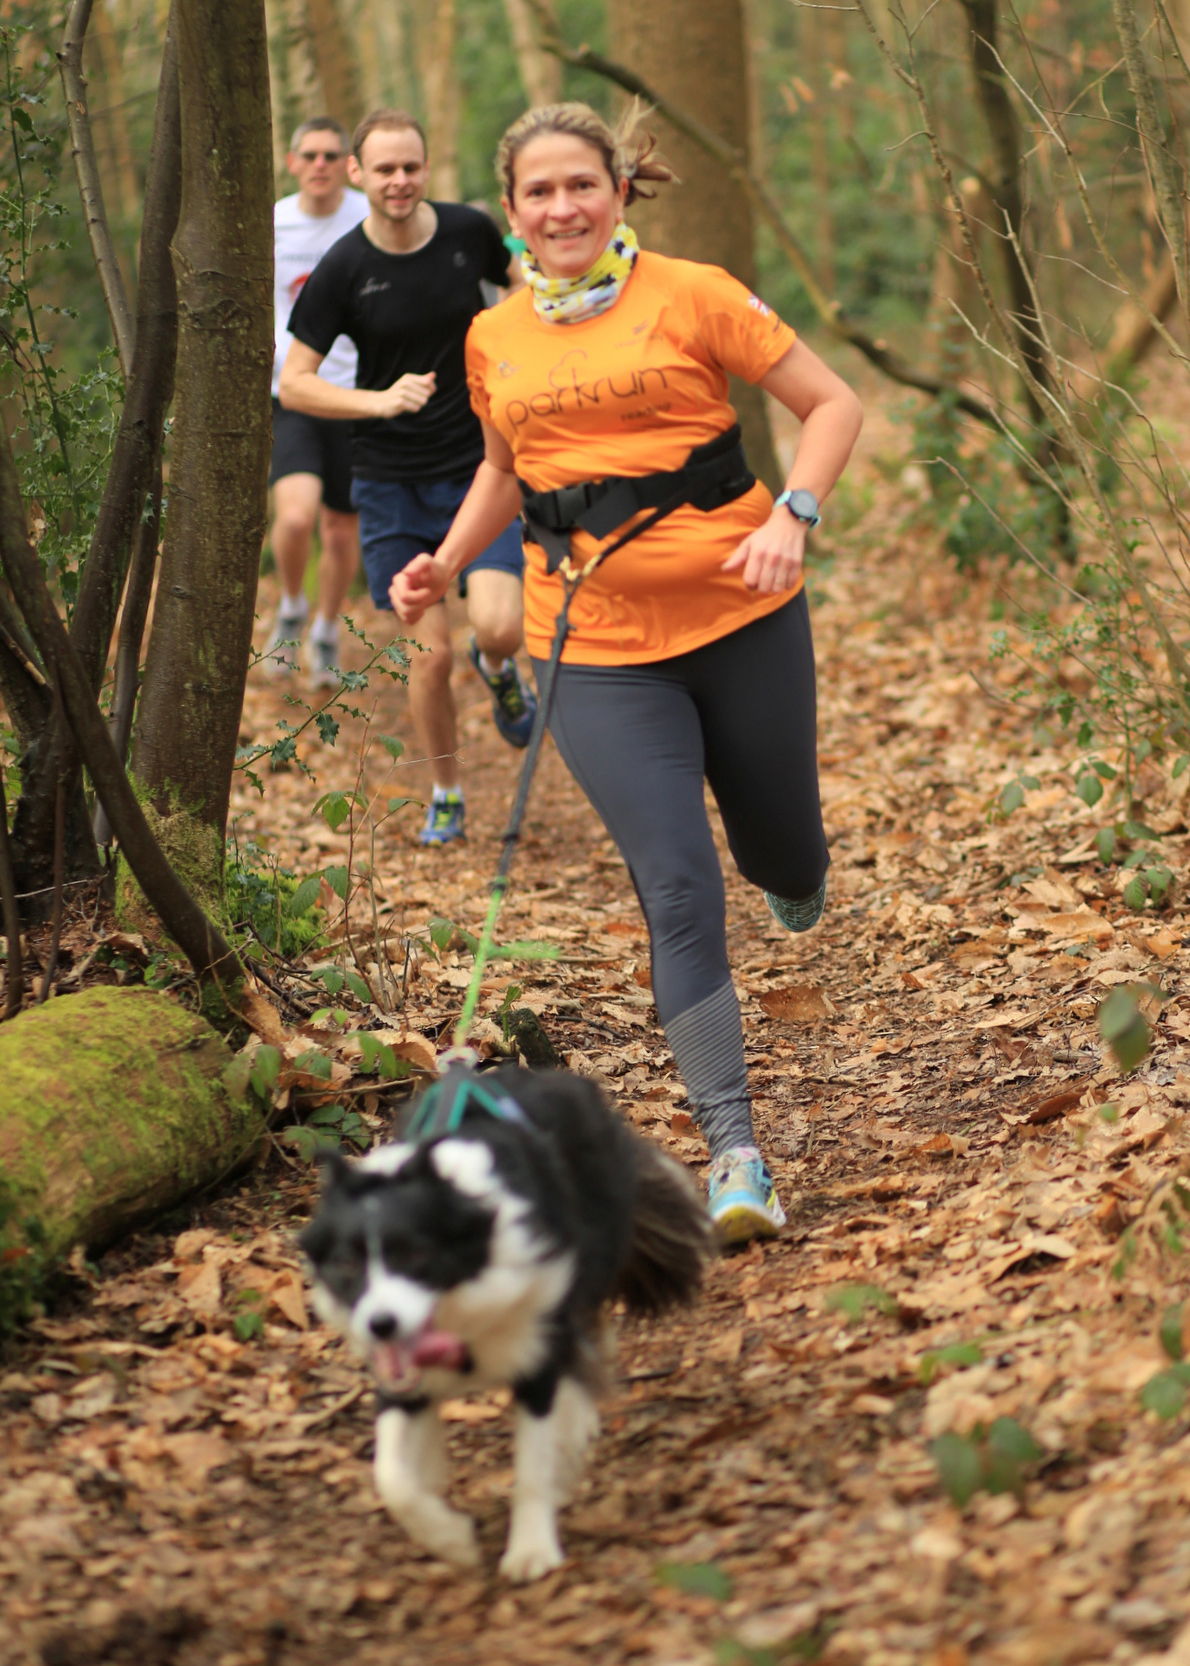 Teresa runs through an Autumn forest with border collie Trudy running ahead on her running harness and lead